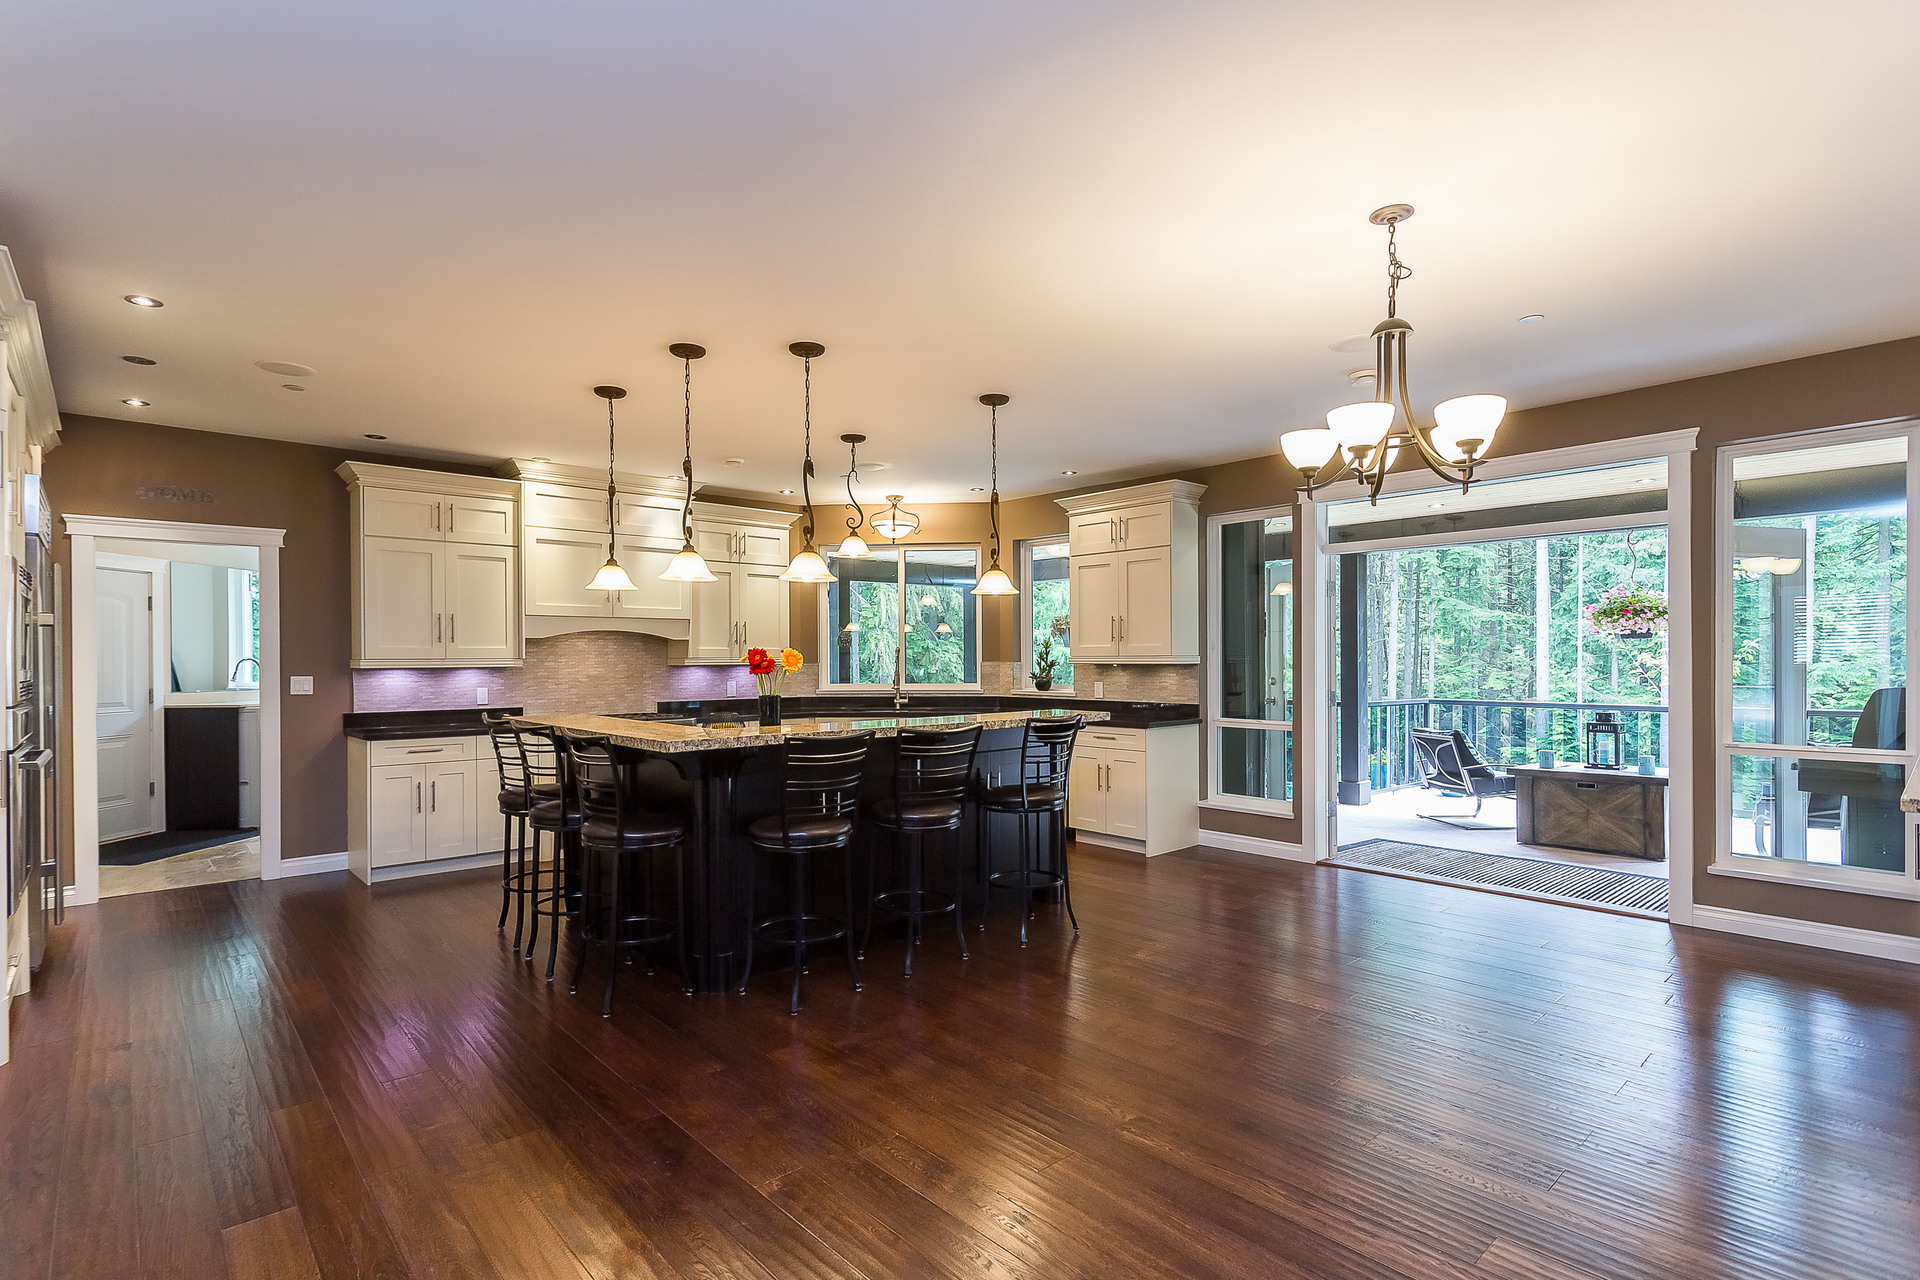 Oak Flooring Throughout at 1408 Crystal Creek Drive, Anmore, Port Moody